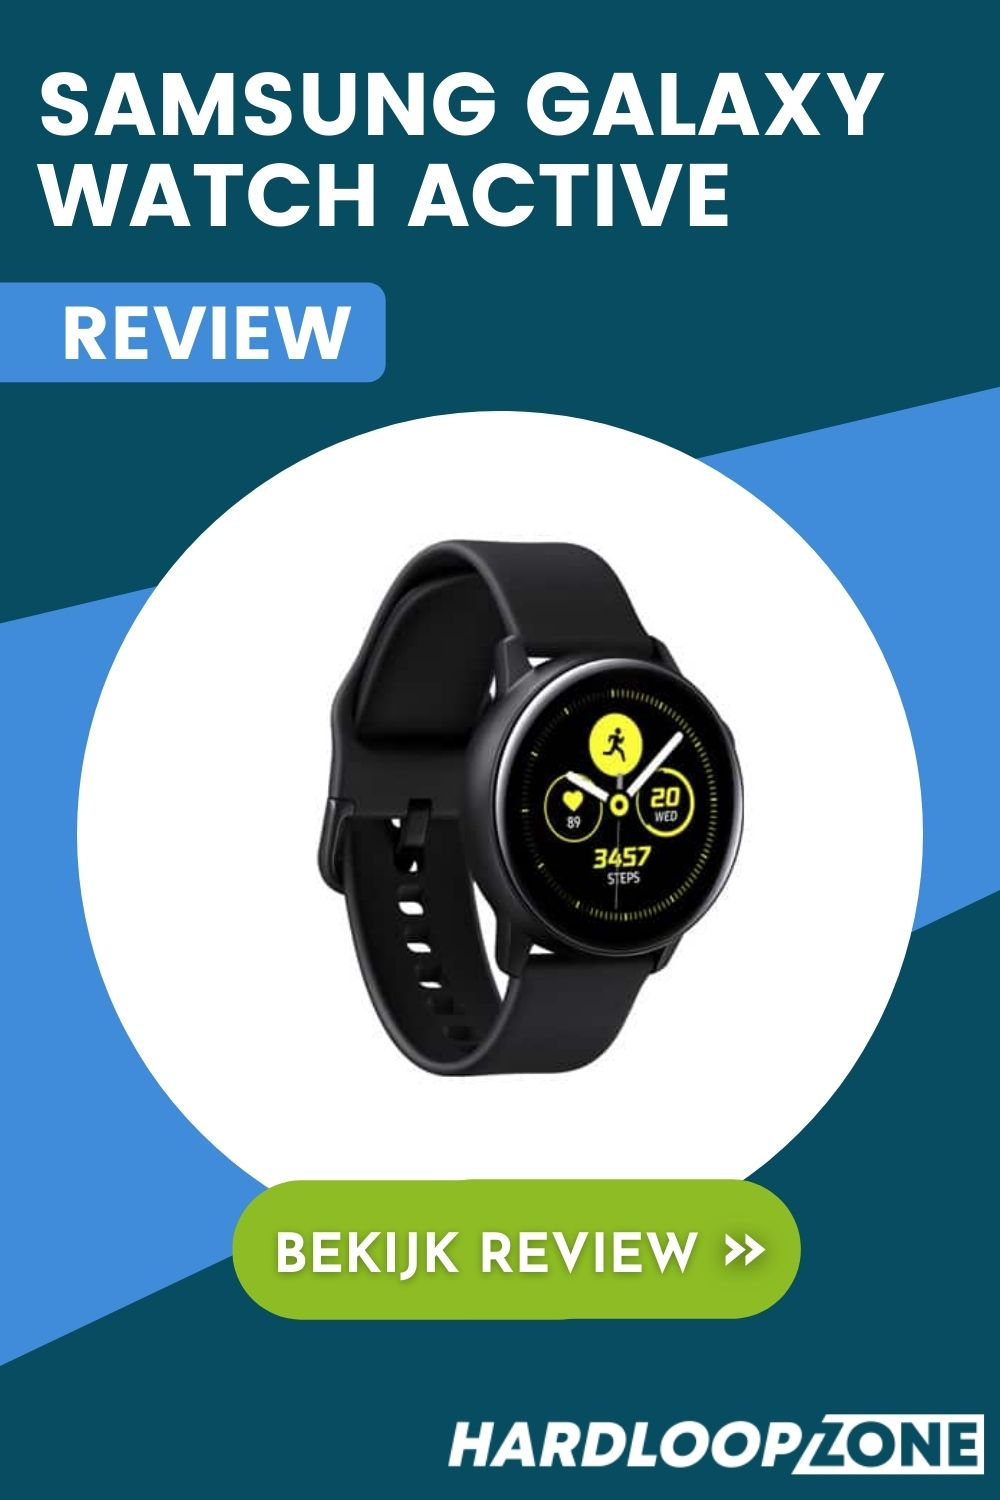 Samsung Galaxy Watch Active Review Smartwatch Hardloopzone